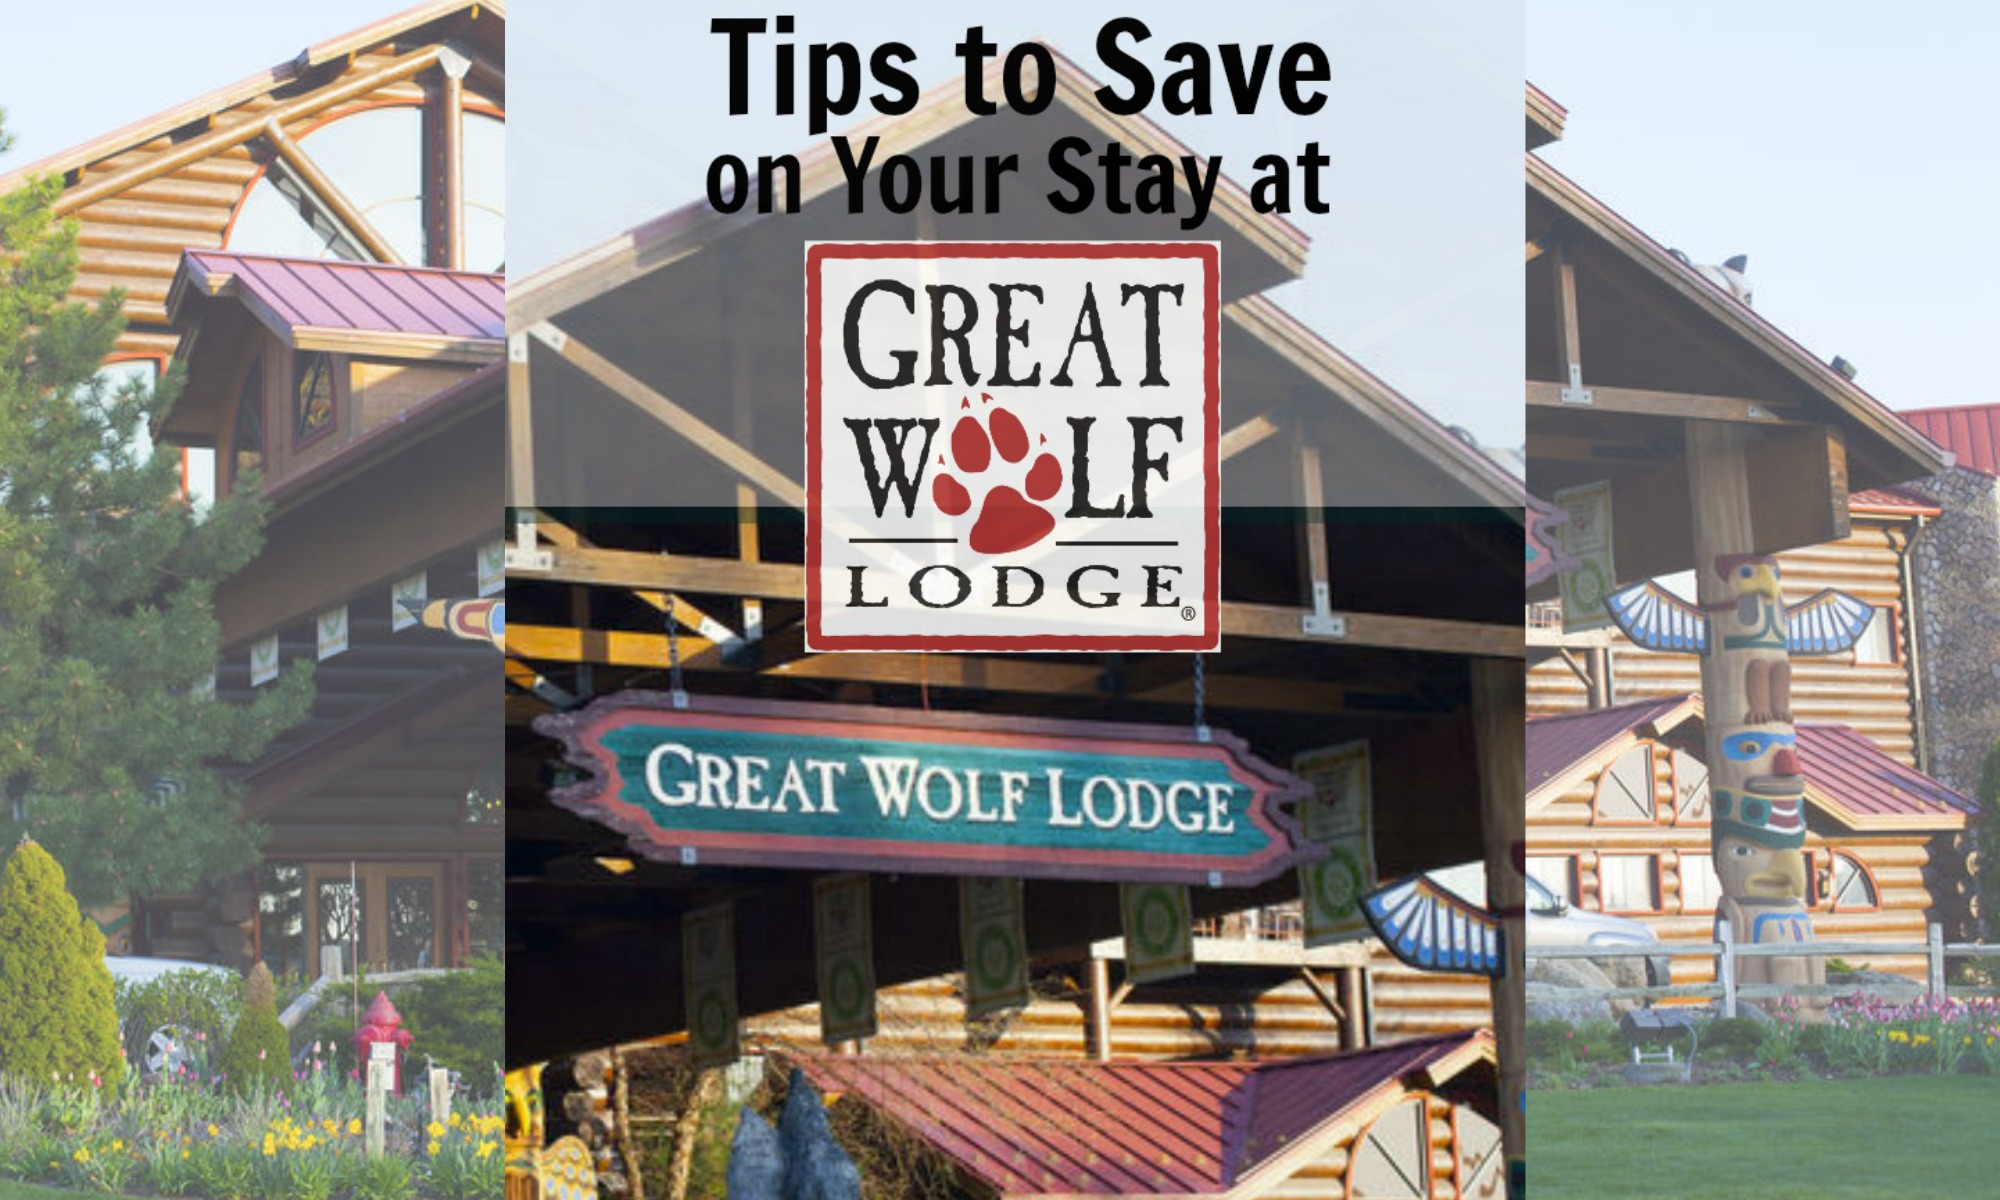 0 Comments for Bear Paw Sweets & Eats at Great Wolf Lodge. No comments have been submitted for this business. Add one below.